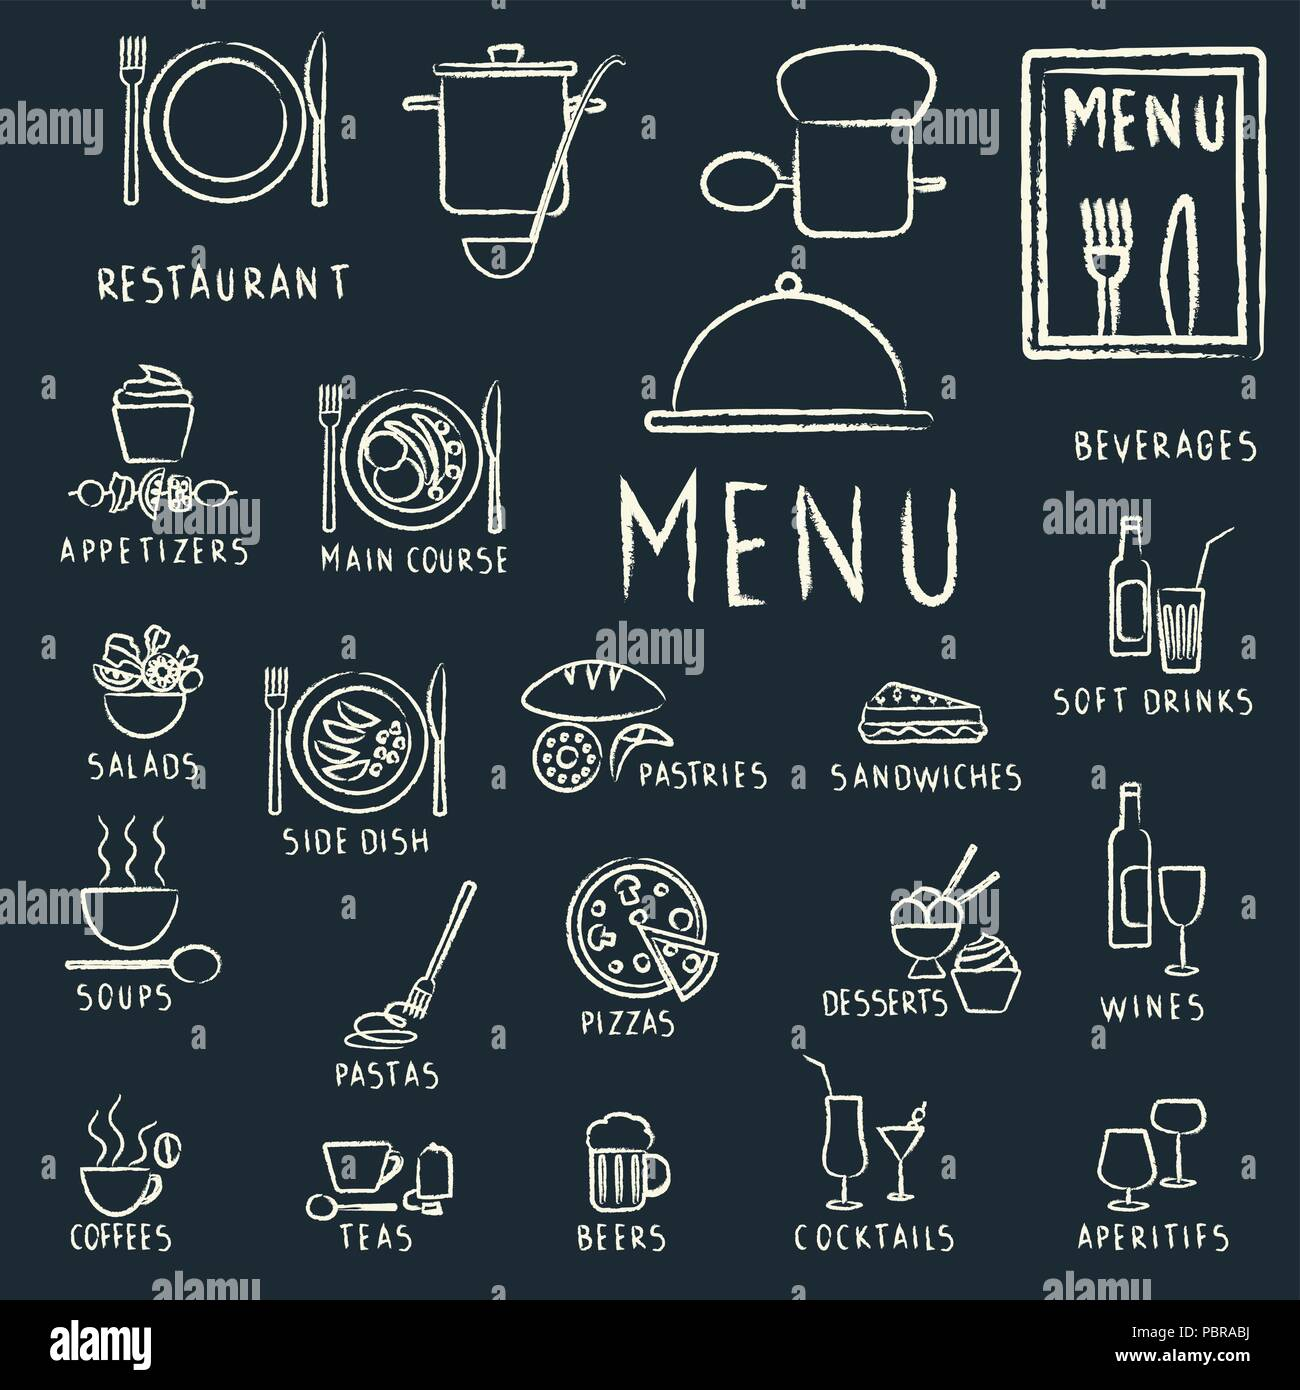 restaurant menu design elements with chalk drawn food and drink